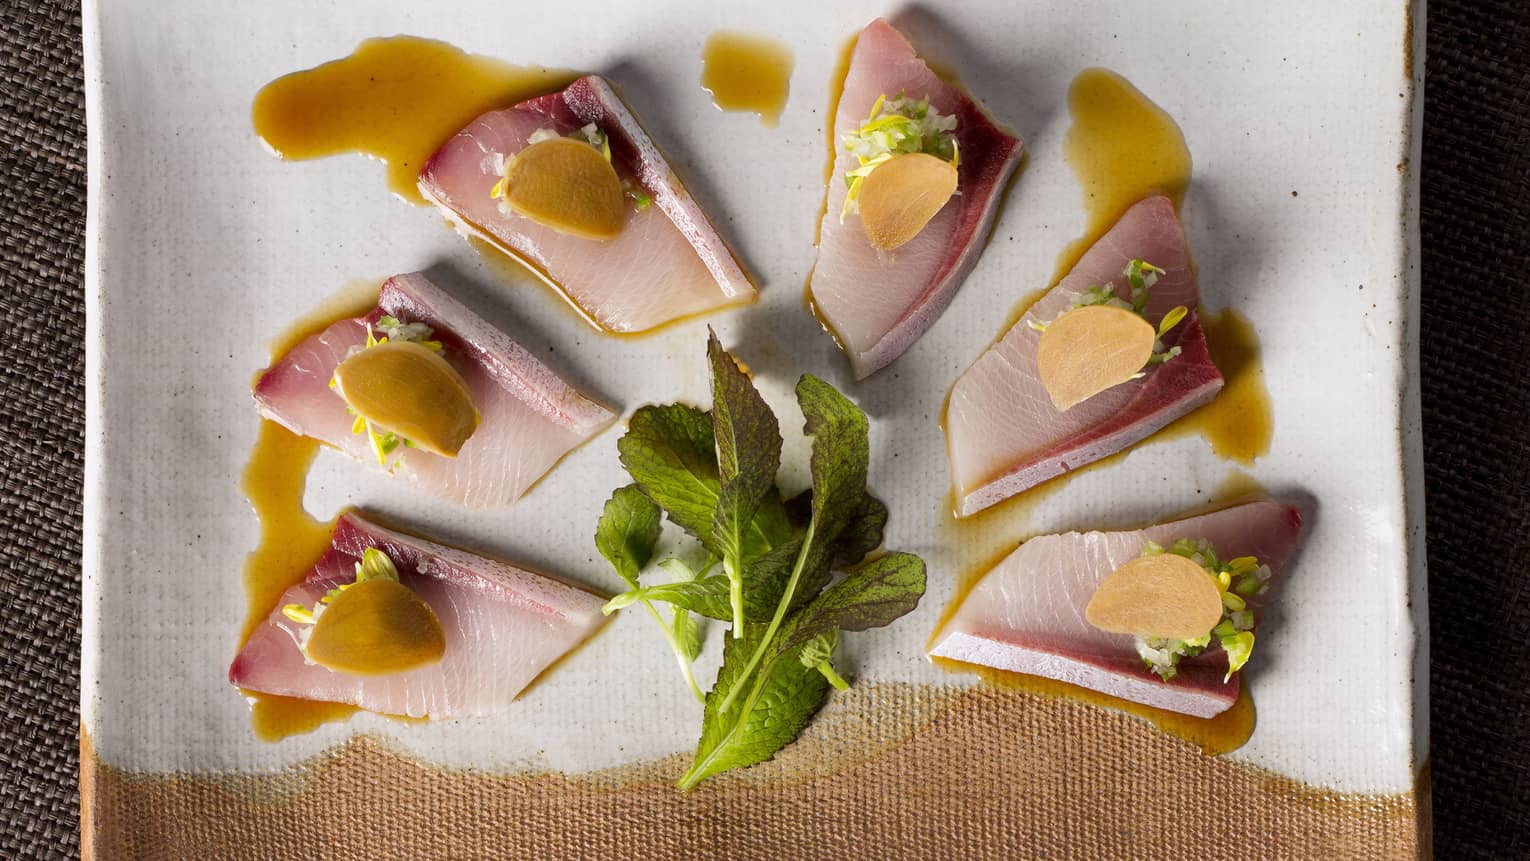 Sliced yellowtail with green chilli relish, ponzu and pickled garlic